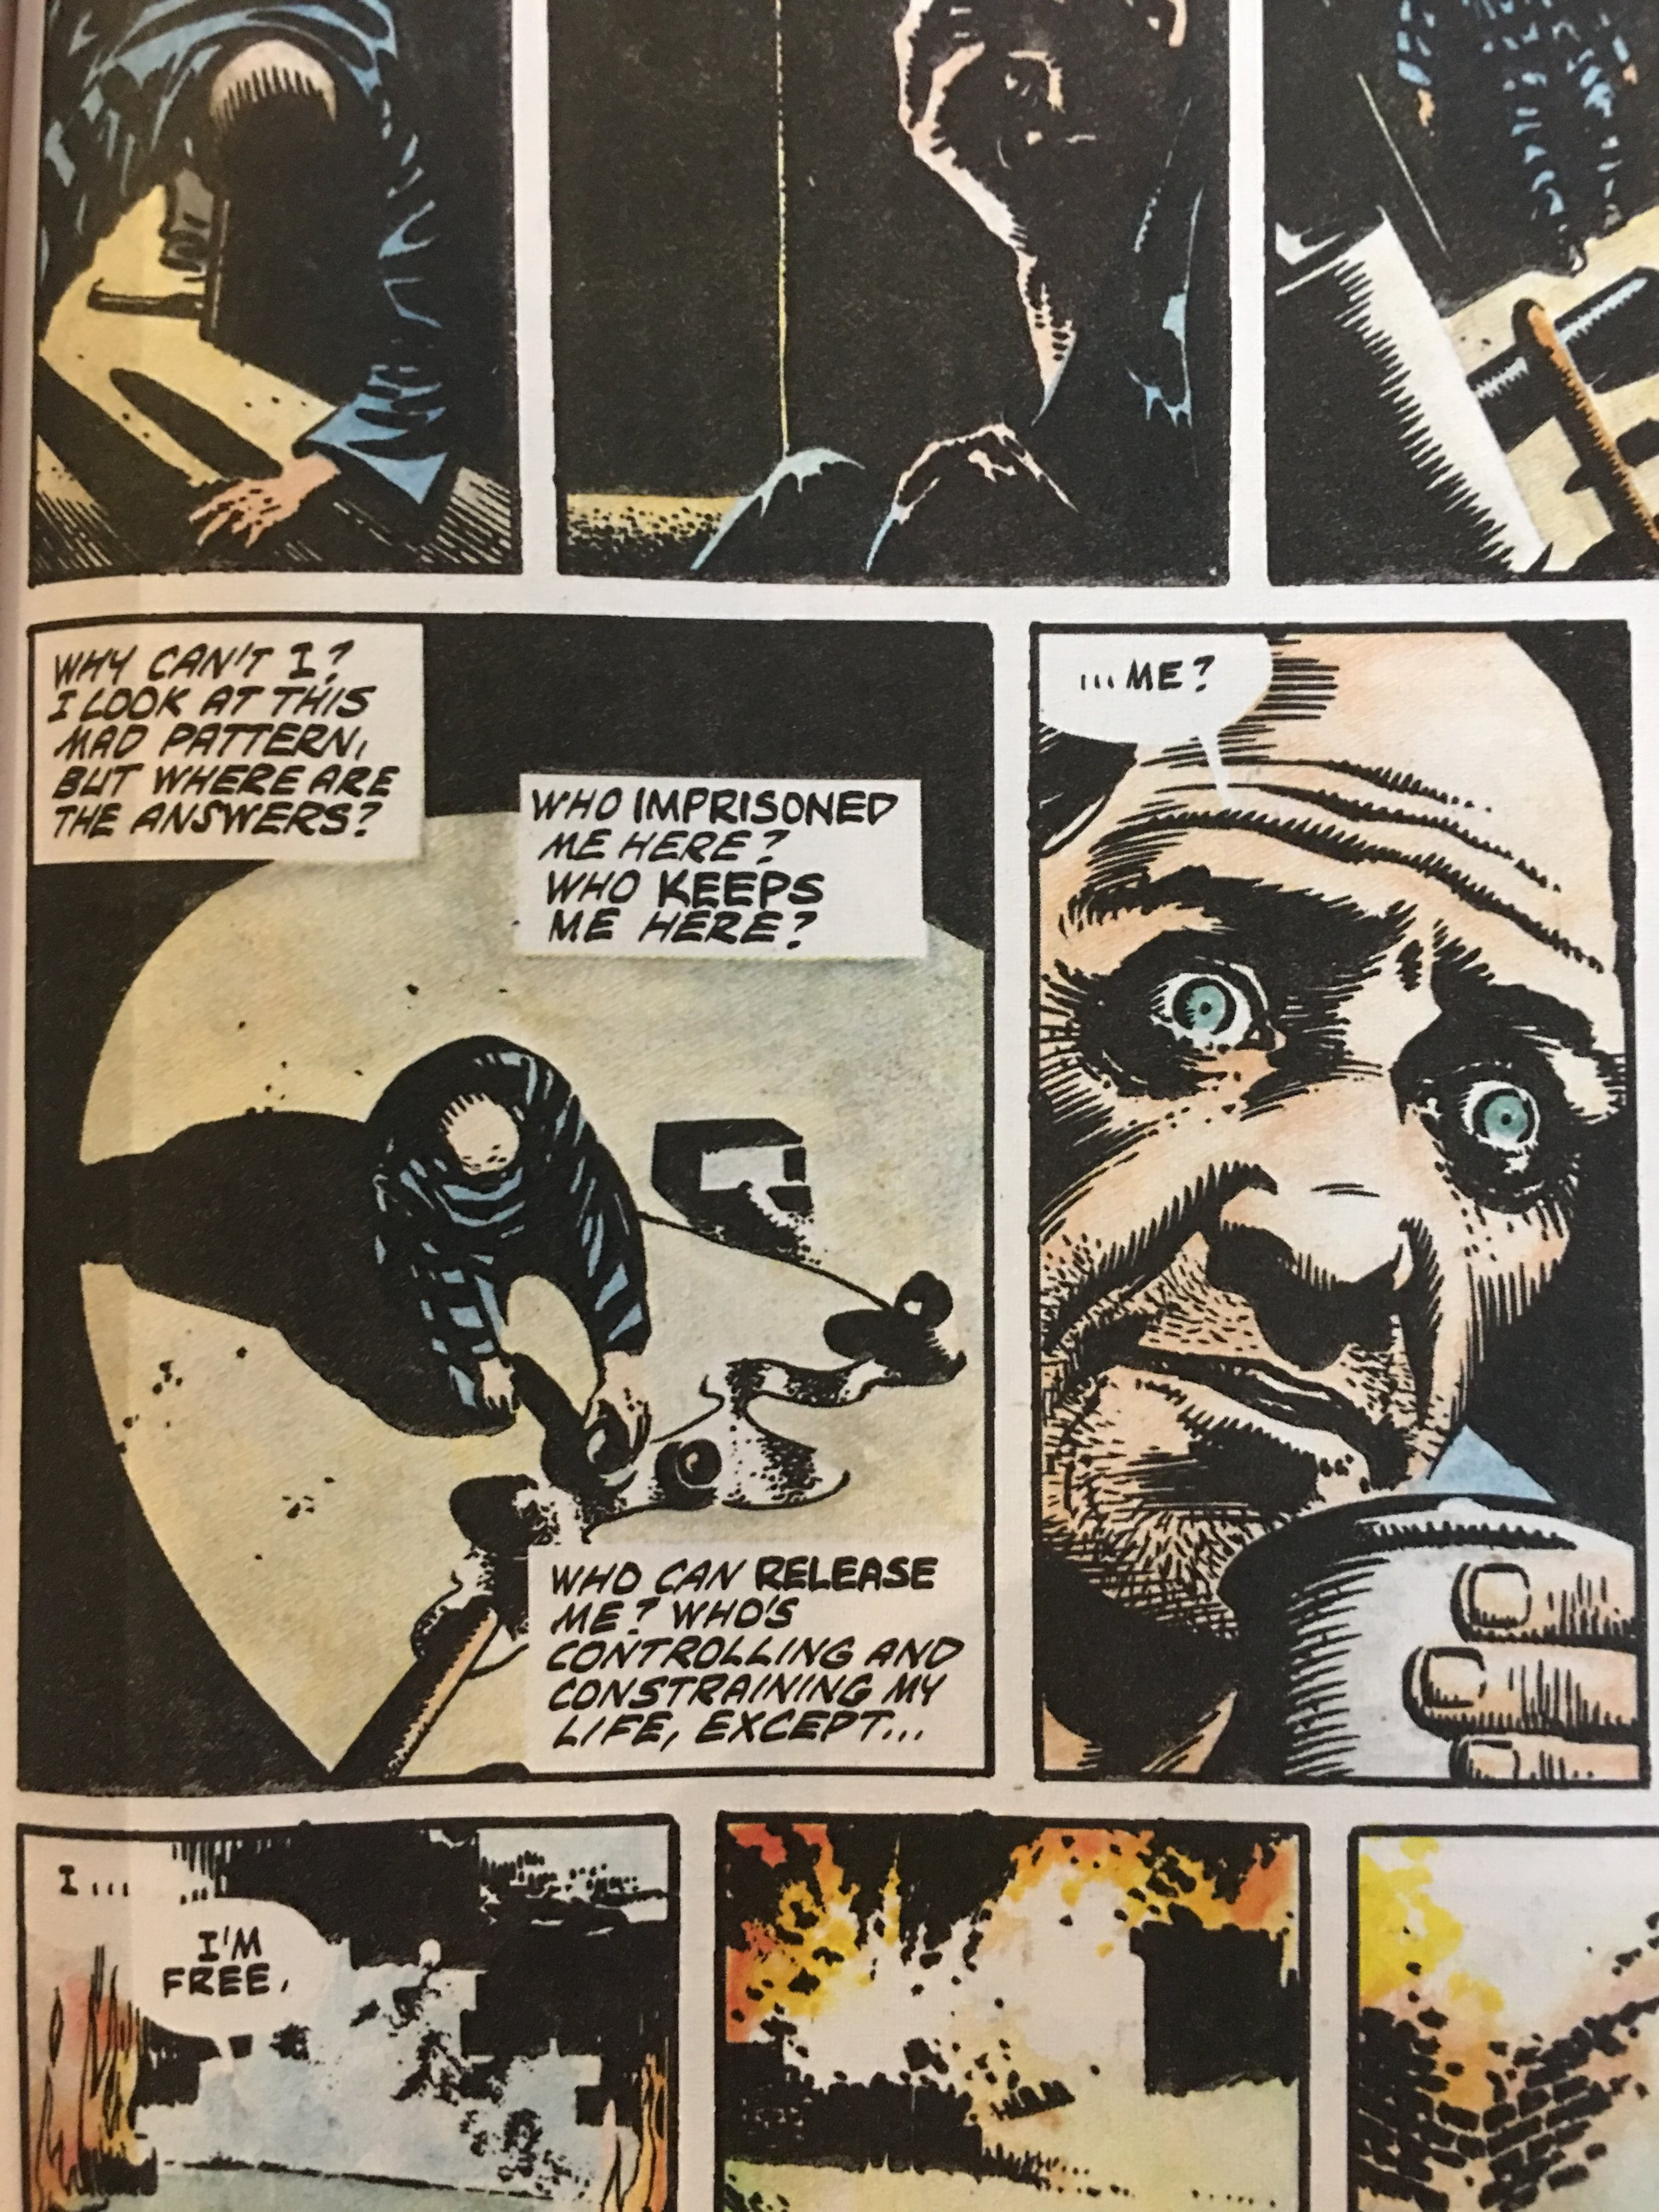 V for Vendetta - (Moore 215).